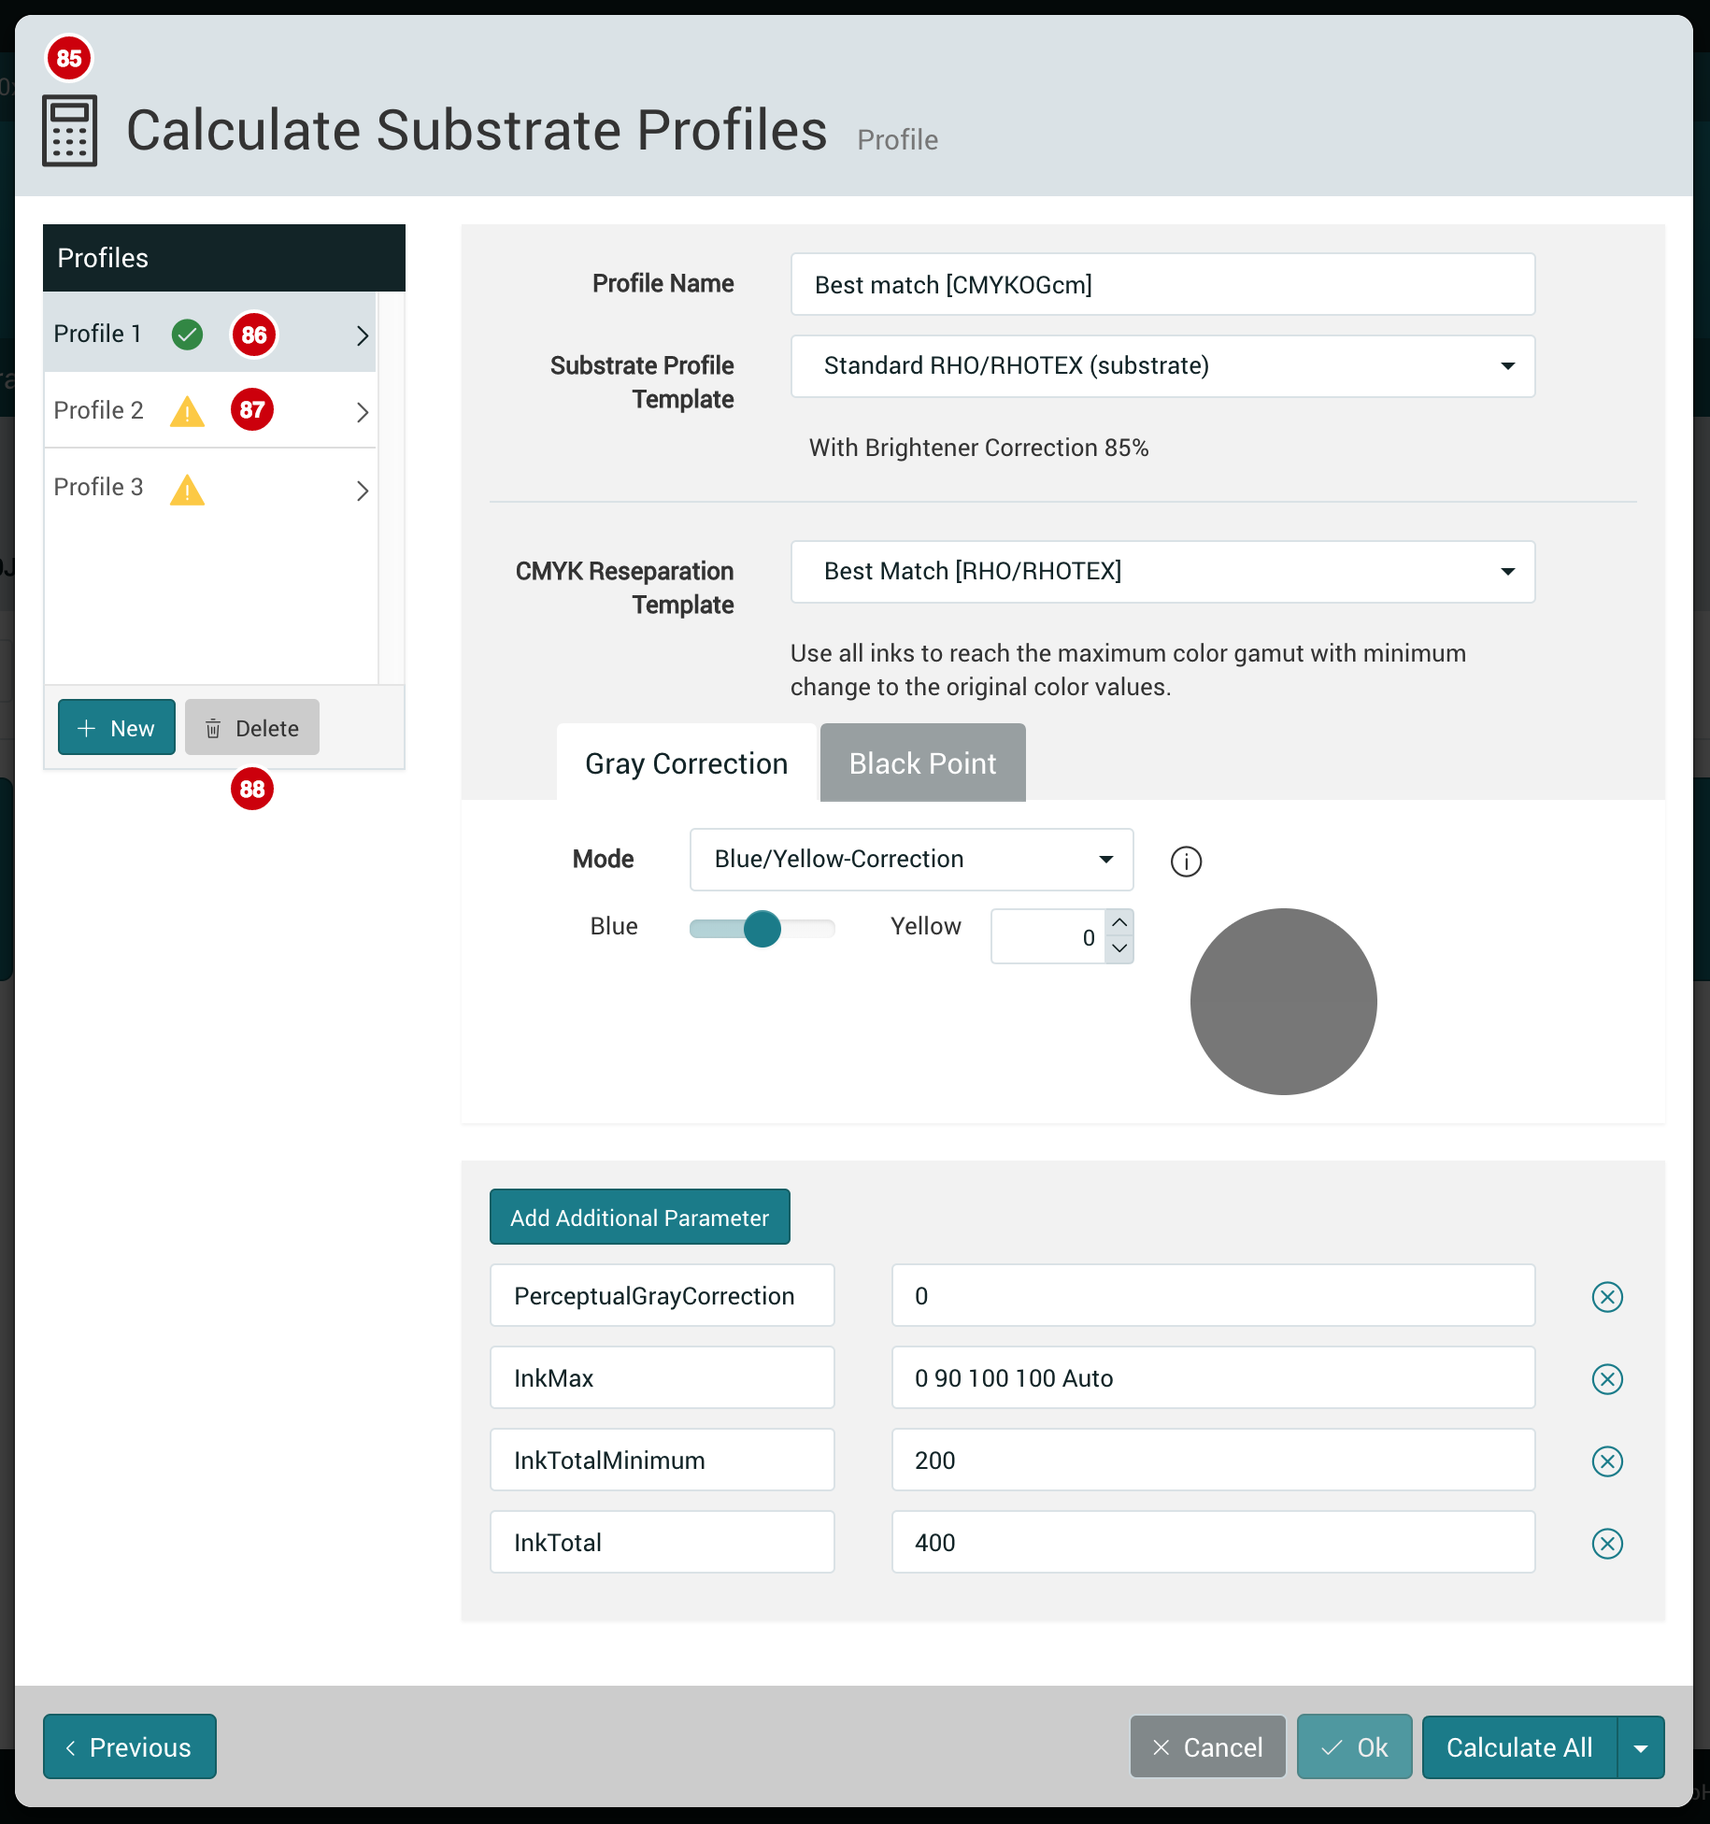 Calculate Substrate Profiles 1.7.2